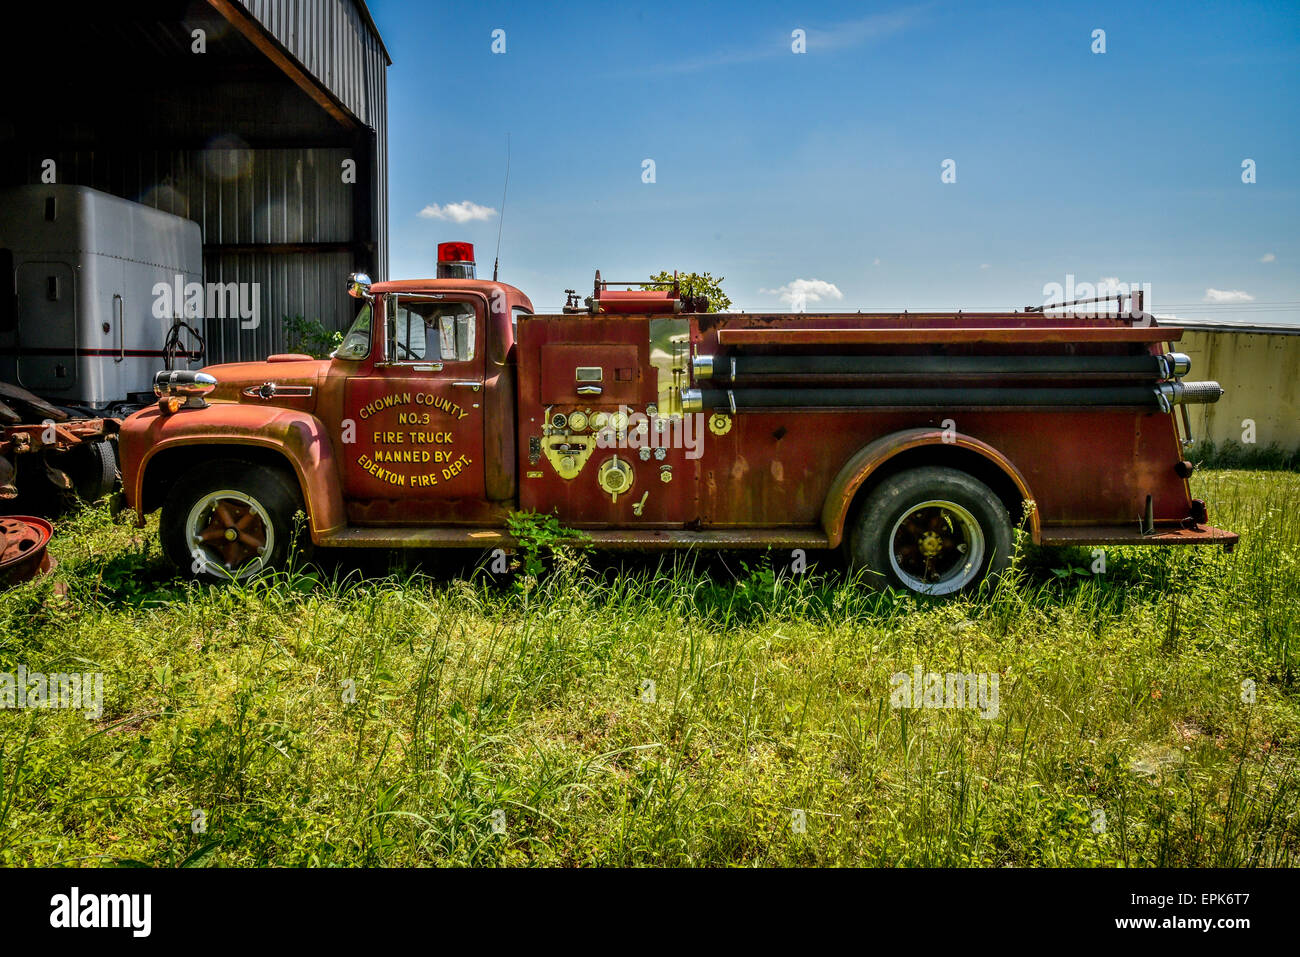 Collection Of Old Trucks In A Truck Junkyard Stock Photos ...